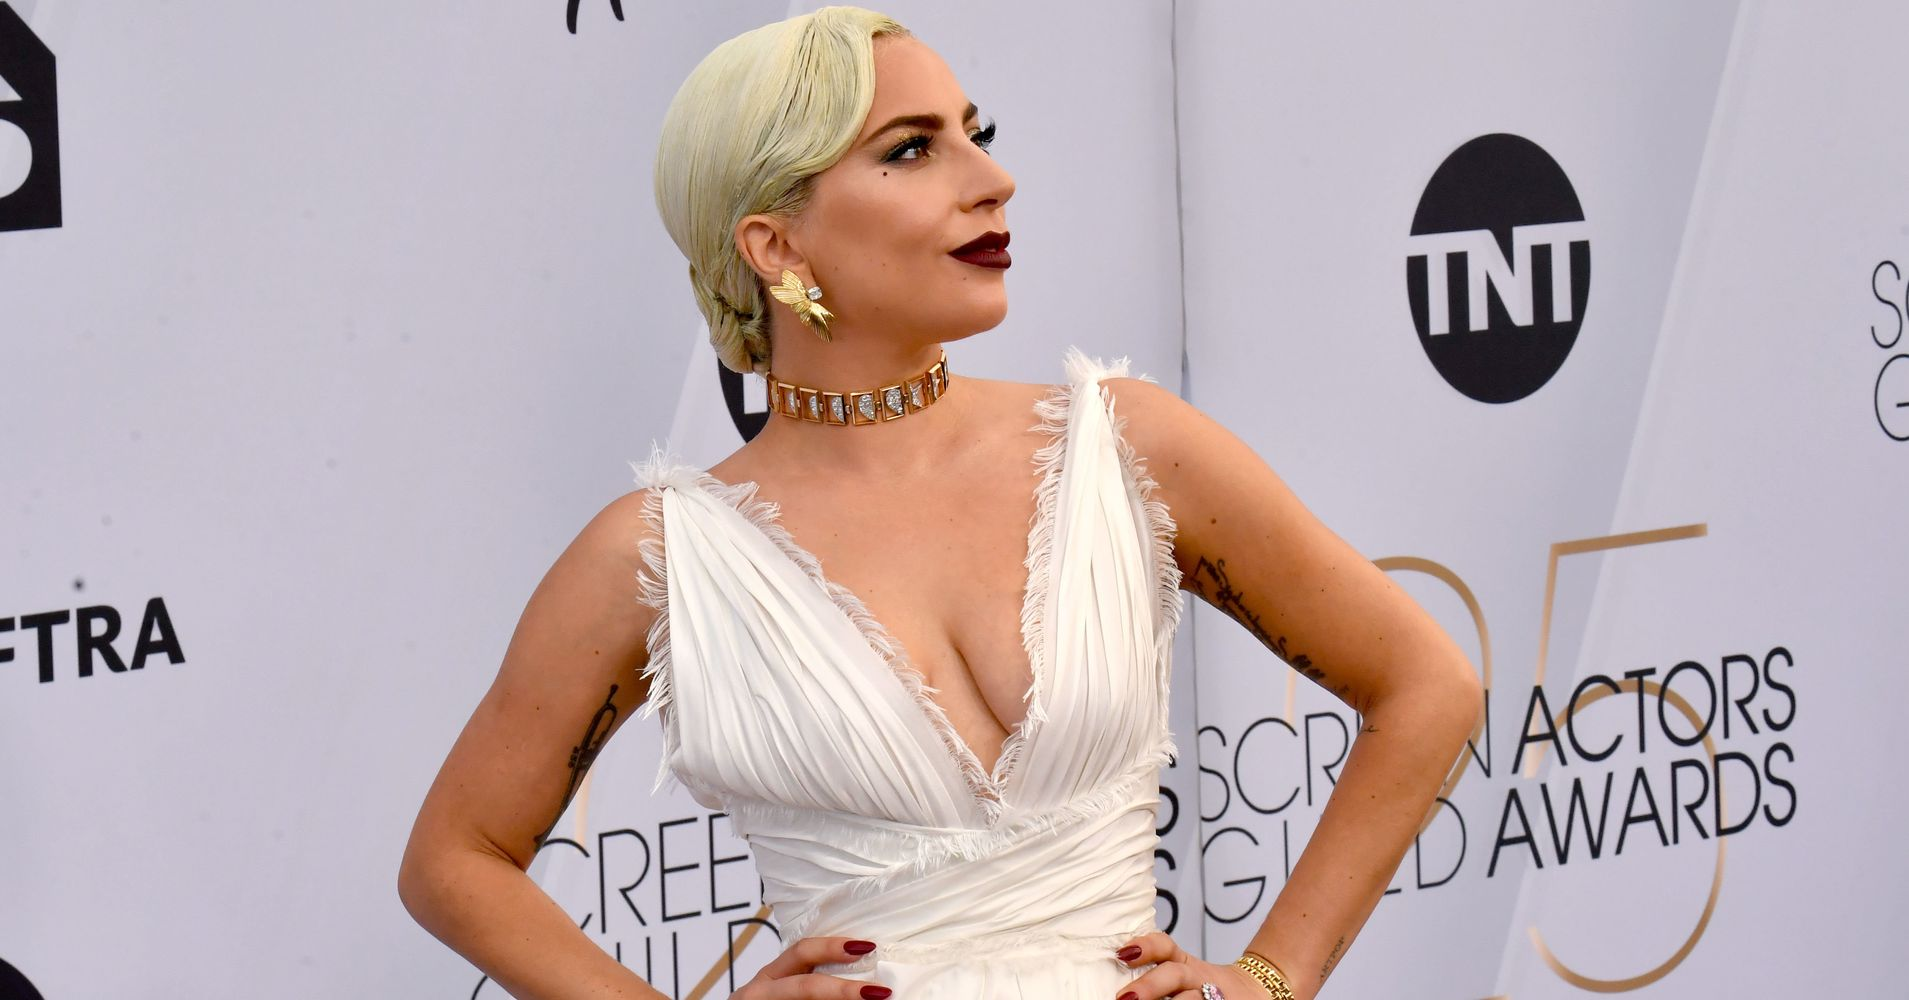 954b3569f85 Lady Gaga Goes Angelic White In Plunging Gown On SAG Awards Red Carpet